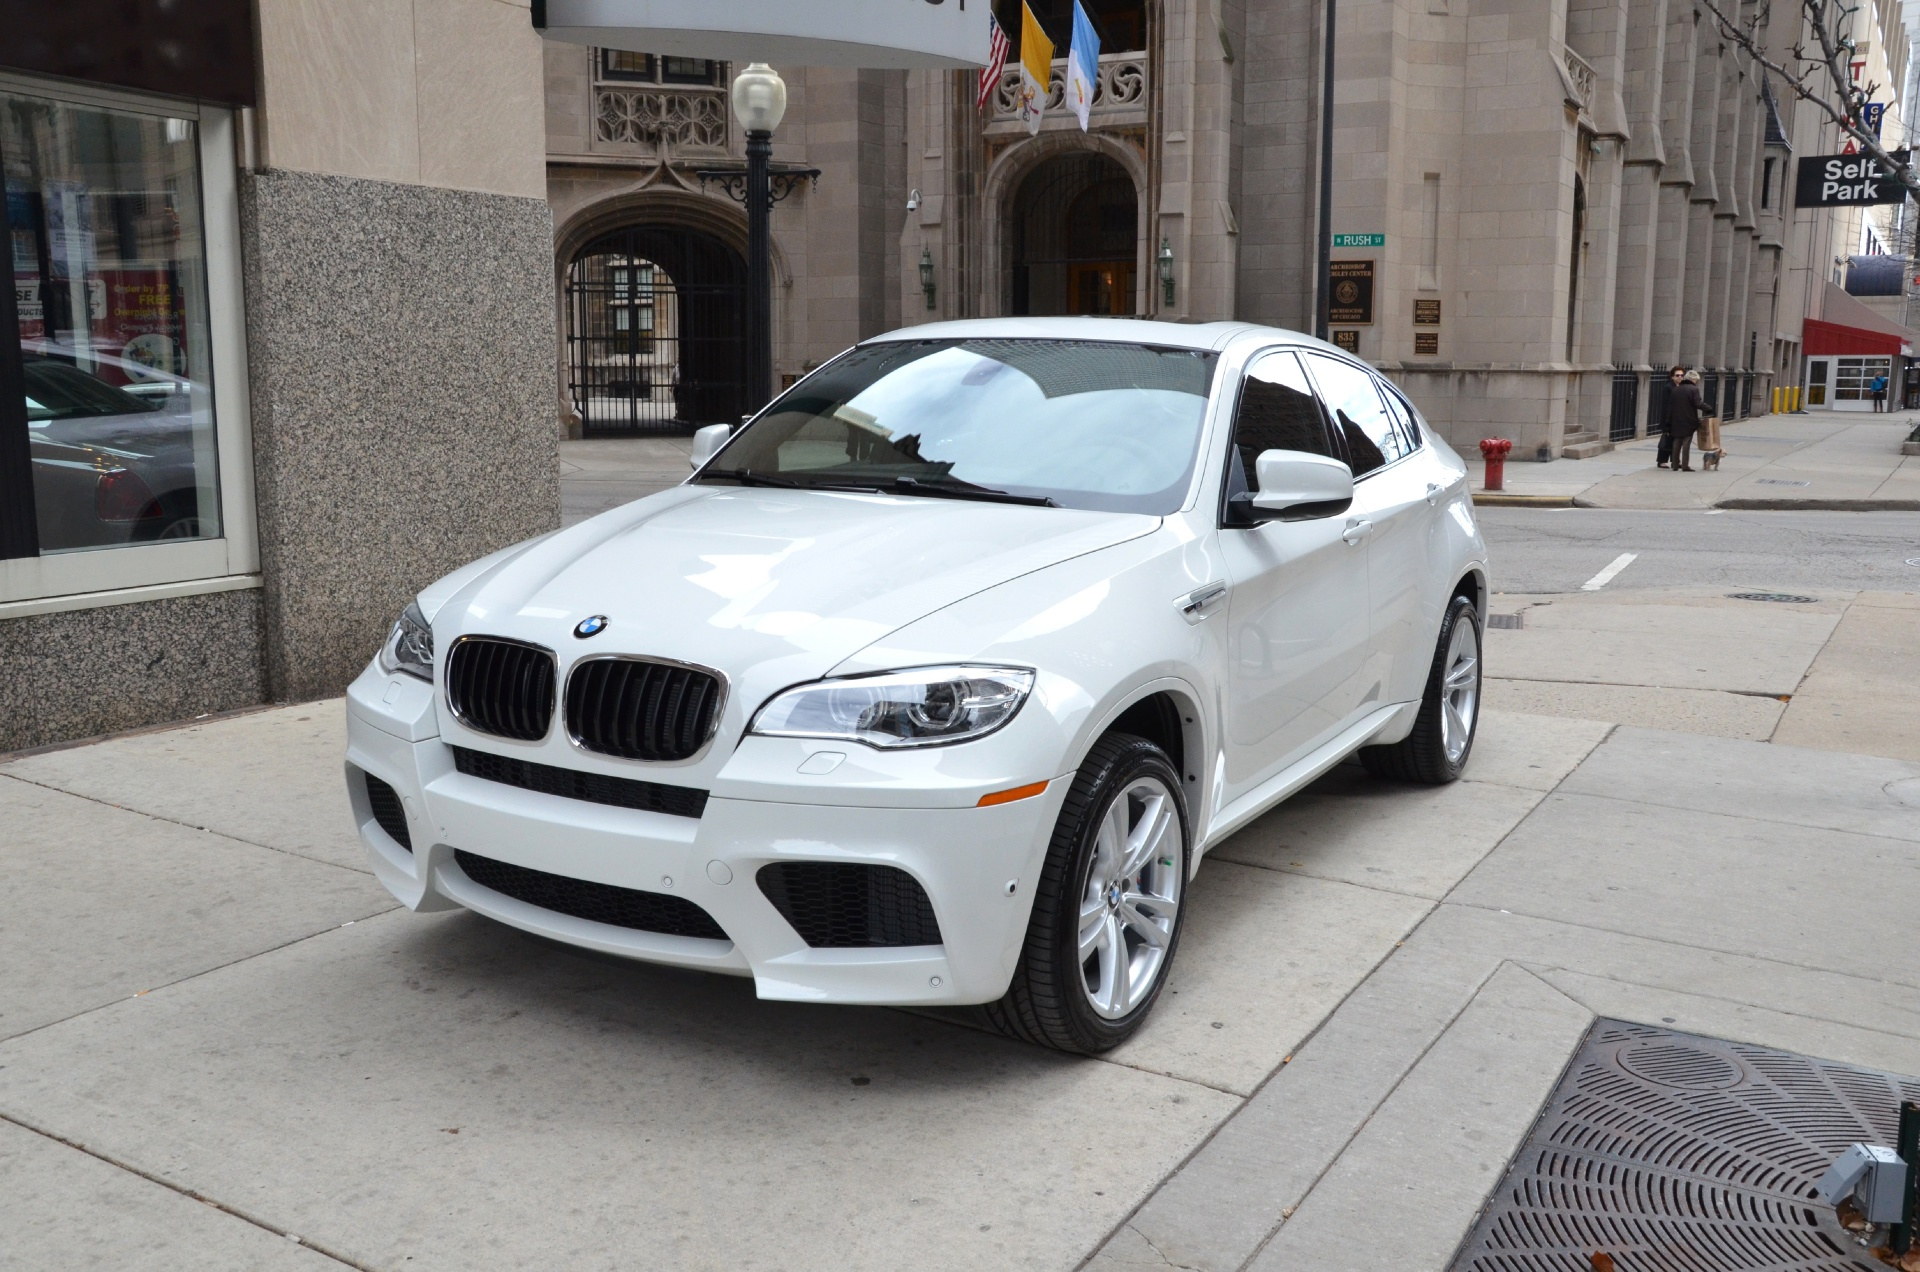 2013 BMW X6 - Information and photos - MOMENTcar